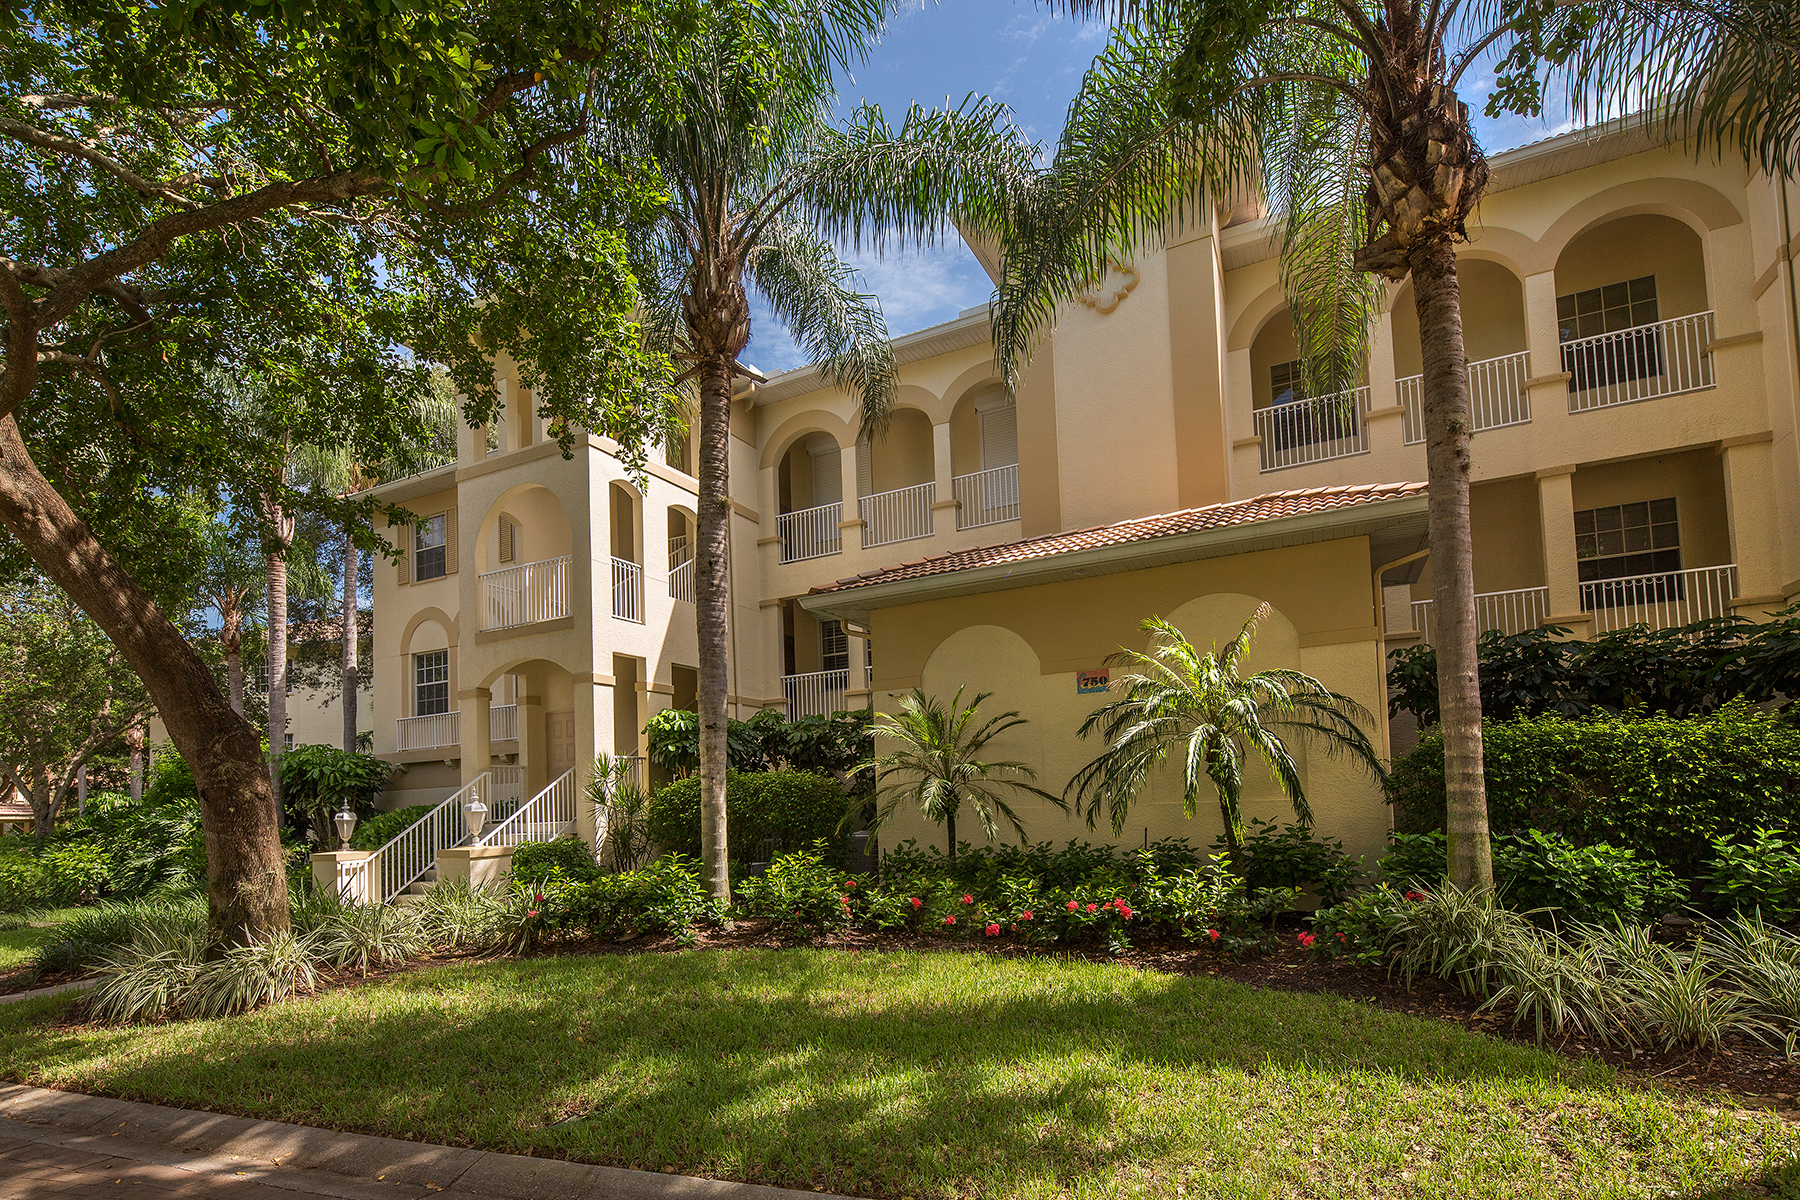 Condominium for Sale at PELICAN BAY - BREAKWATER 750 Bentwater Cir 7-101 Naples, Florida, 34108 United States